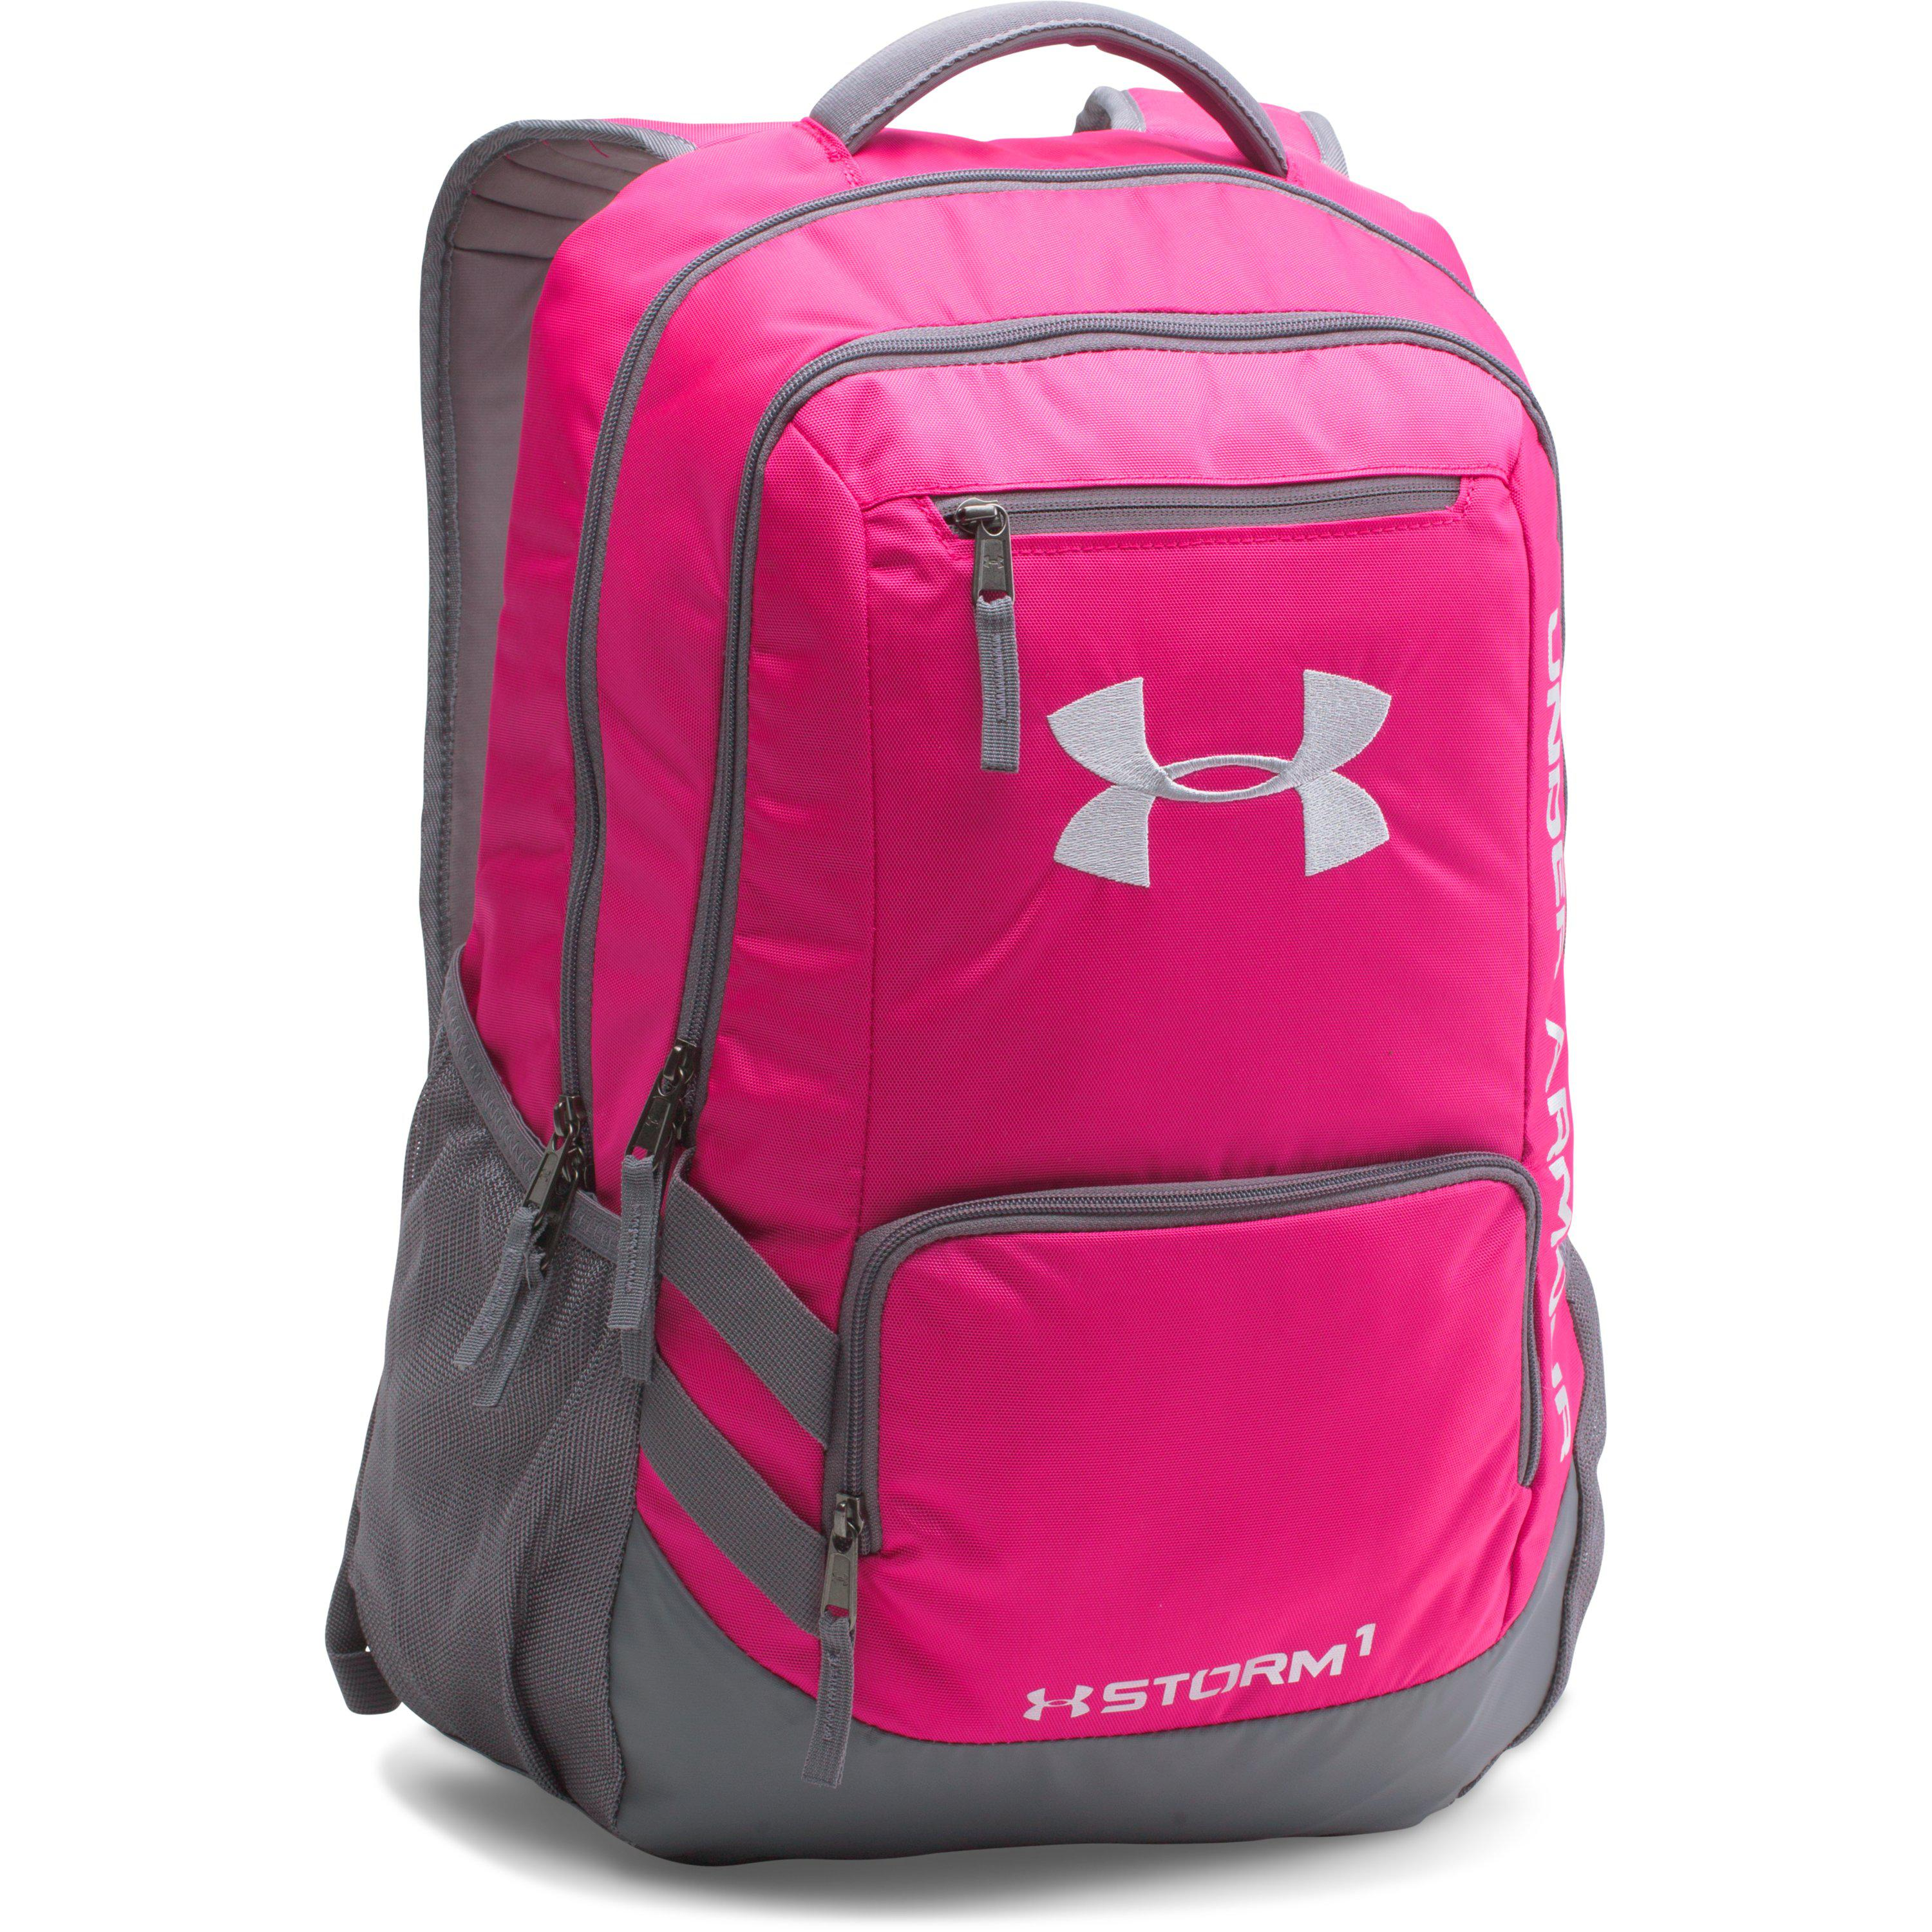 Lyst - Under Armour Ua Team Hustle Backpack in Pink 923b662175